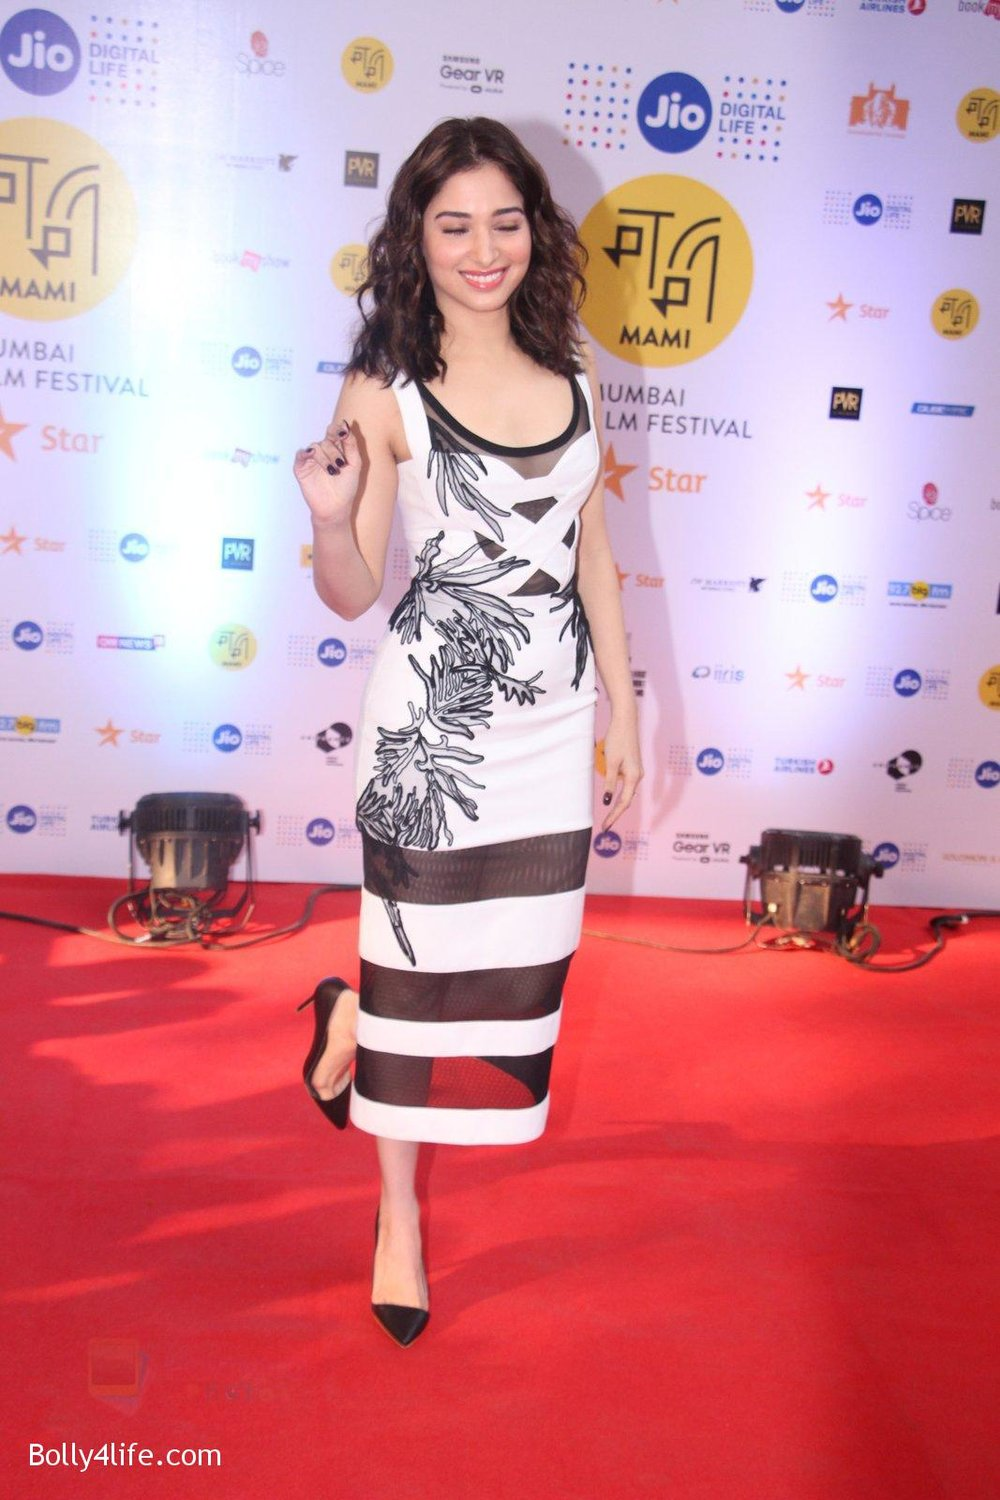 Tamannaah-Bhatia-at-MAMI-Film-Festival-2016-Day-2-on-22nd-Oct-2016-66.jpg